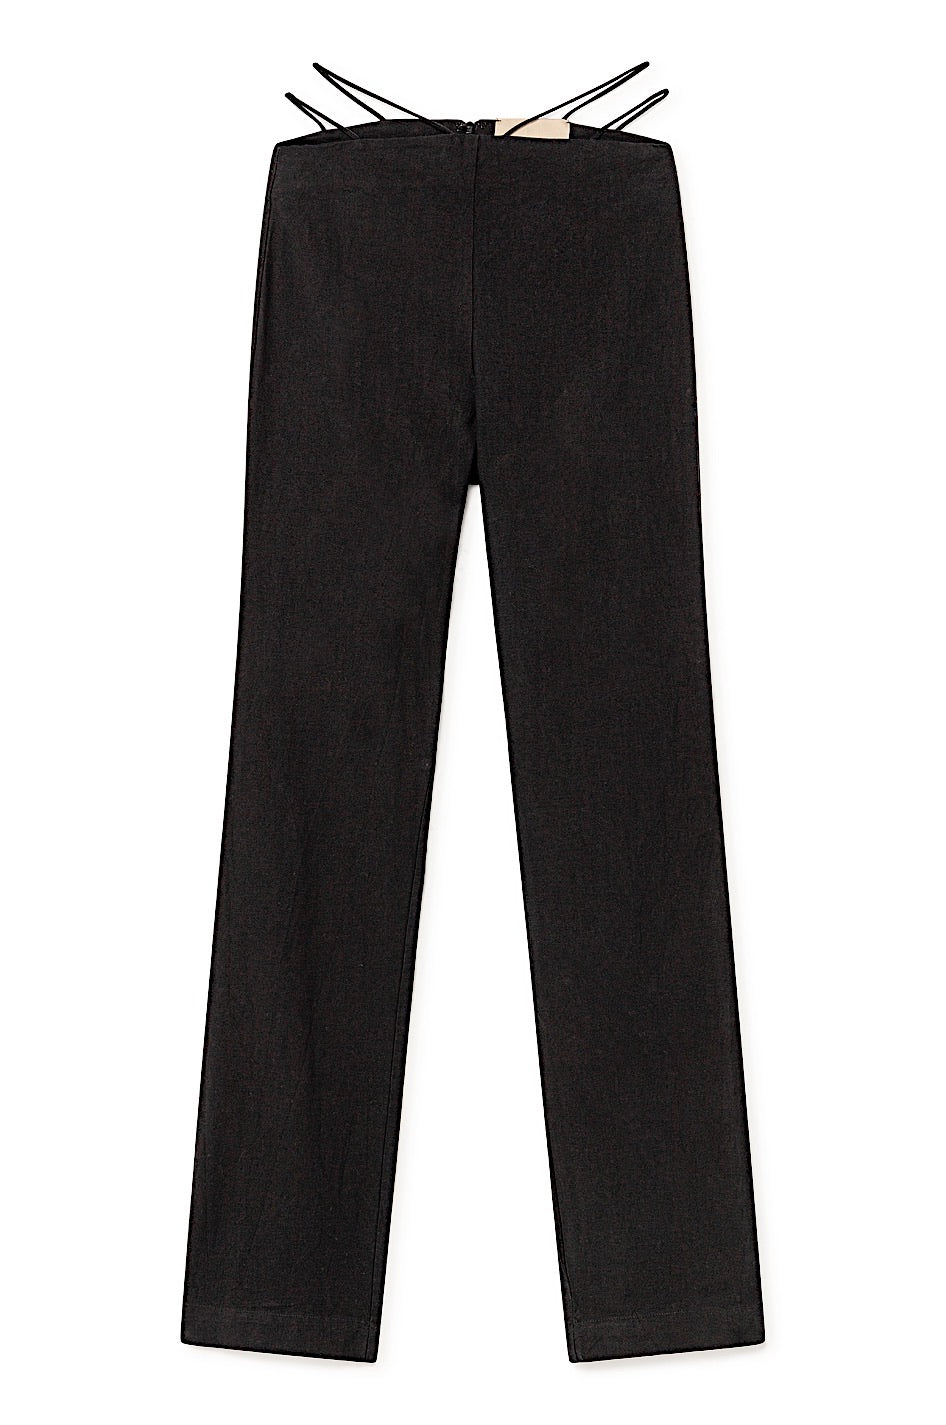 Amber Linen Cotton Strappy Waist Pants - Black